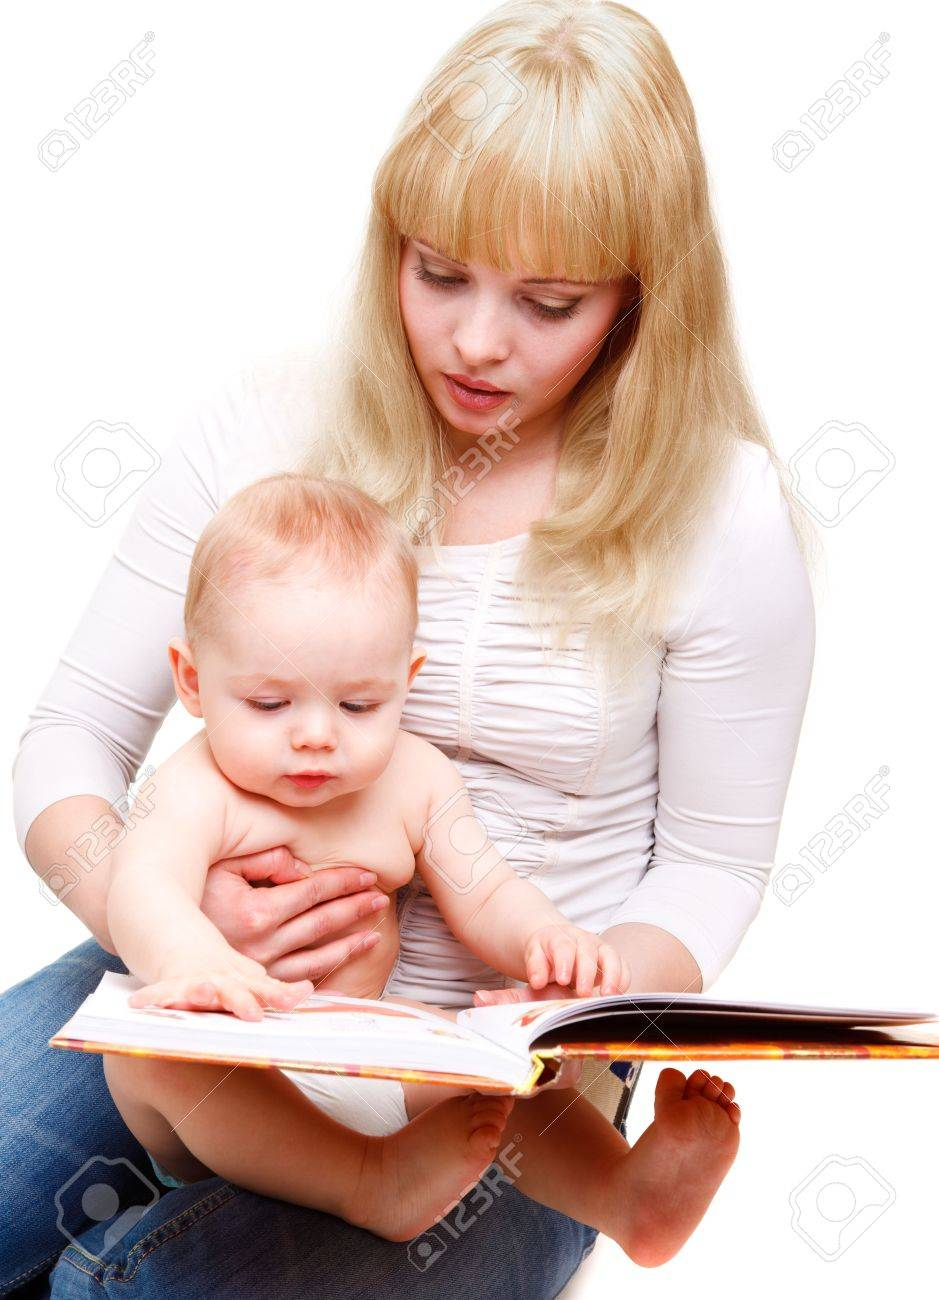 Mom reading a book to her baby son Stock Photo - 6553666